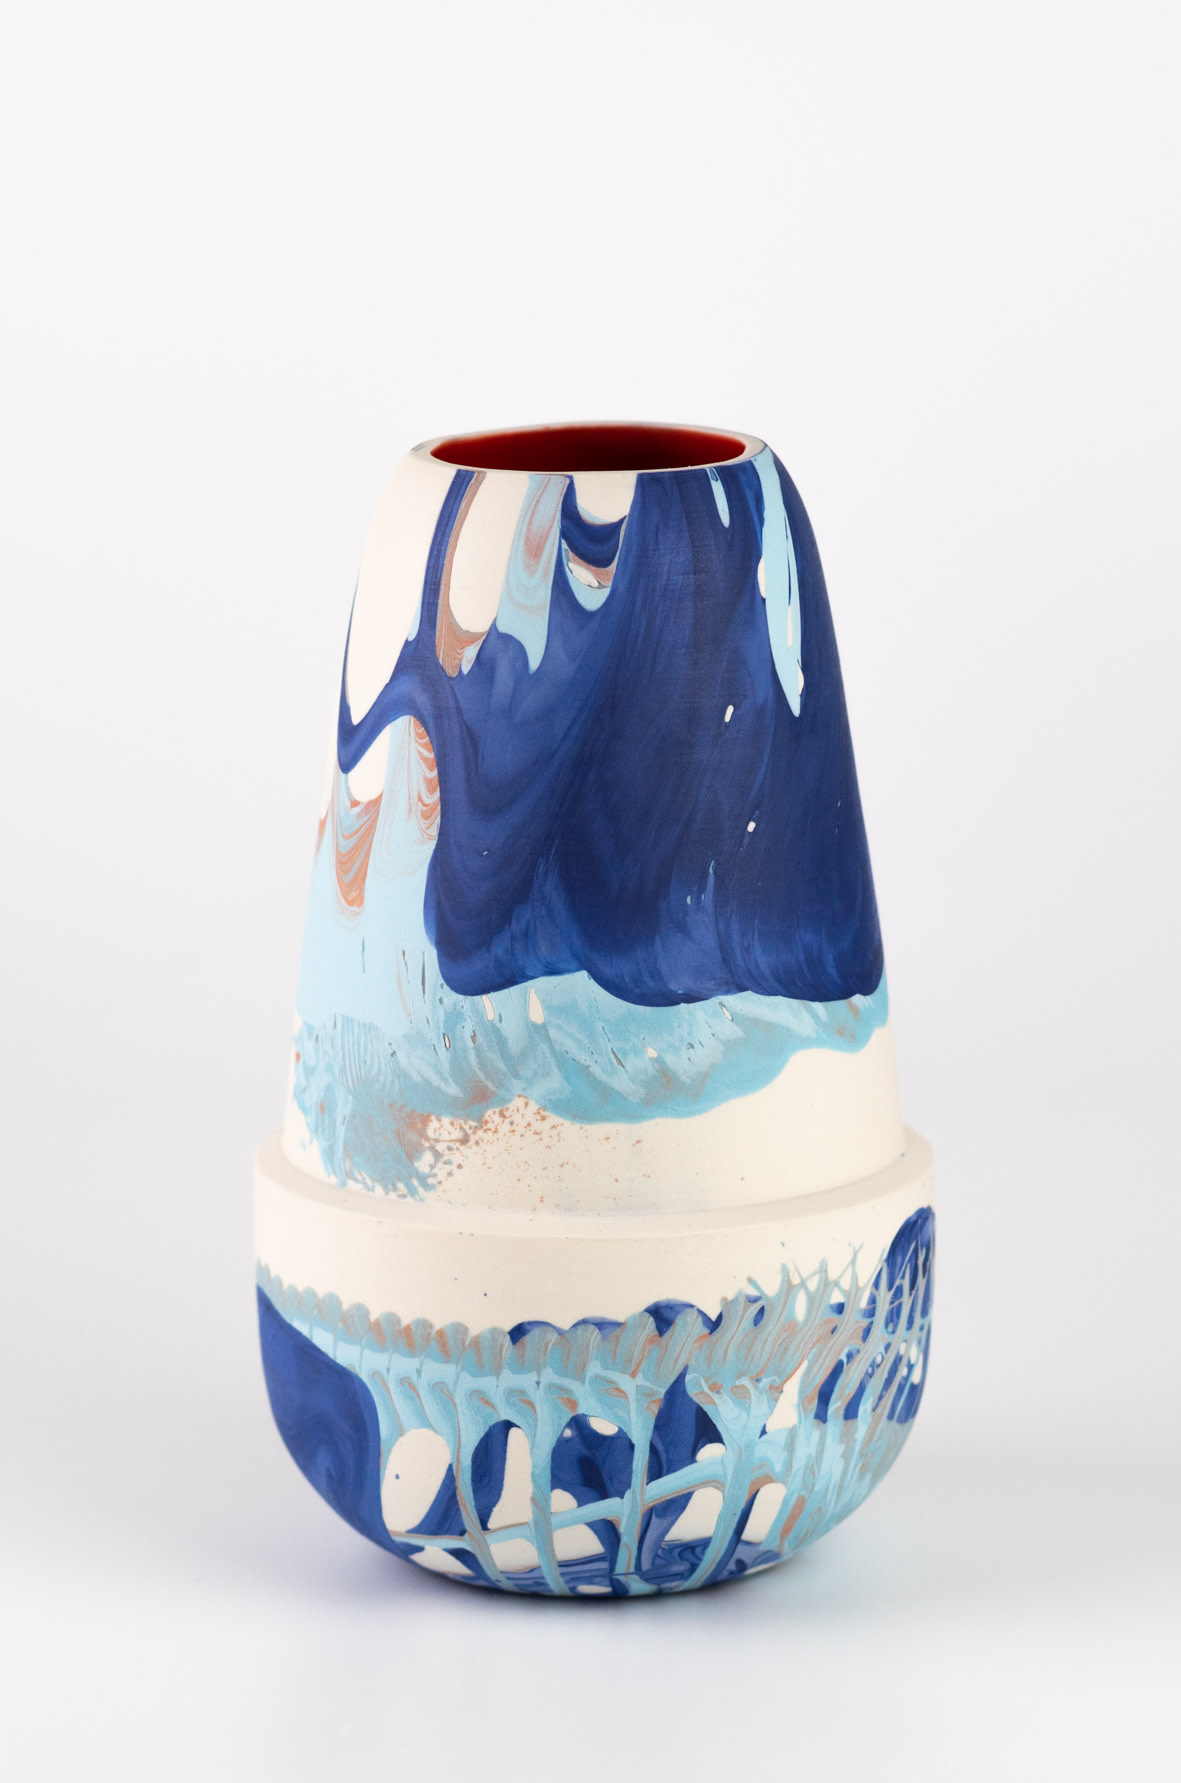 "<span class=""link fancybox-details-link""><a href=""/artists/219-james-pegg/works/6575-james-pegg-achladi-vase-2019/"">View Detail Page</a></span><div class=""artist""><strong>James Pegg</strong></div> <div class=""title""><em>Achladi Vase</em>, 2019</div> <div class=""medium"">action-cast stained porcelain with glazed interior</div><div class=""price"">£180.00</div><div class=""copyright_line"">OwnArt: £ 18 x 10 months, 0% APR</div>"